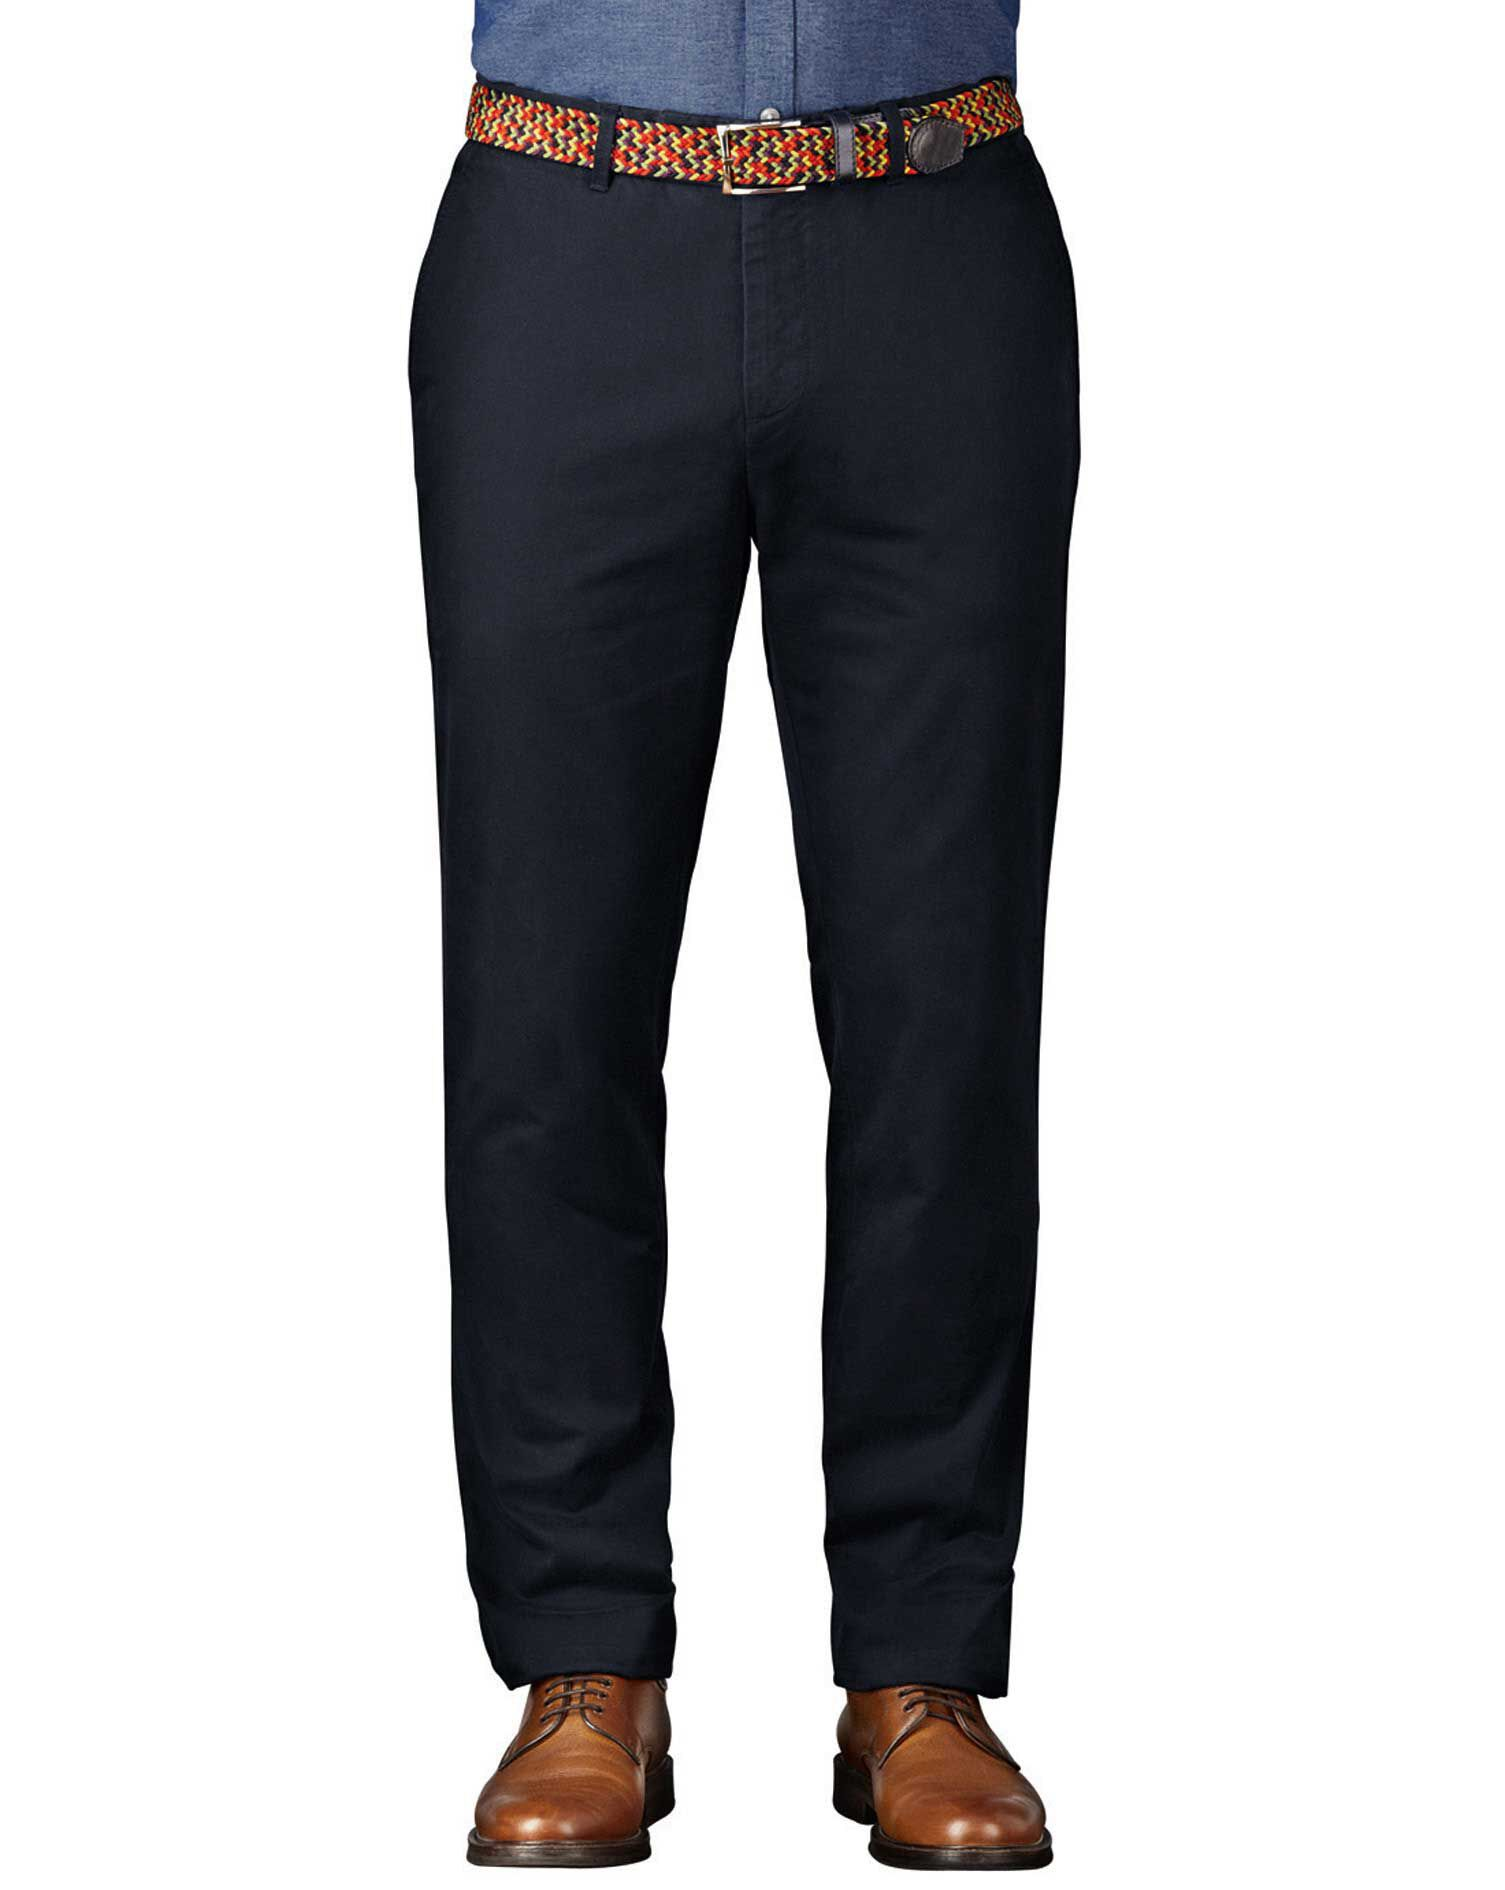 Navy Extra Slim Fit Flat Front Cotton Chino Trousers Size W34 L34 by Charles Tyrwhitt